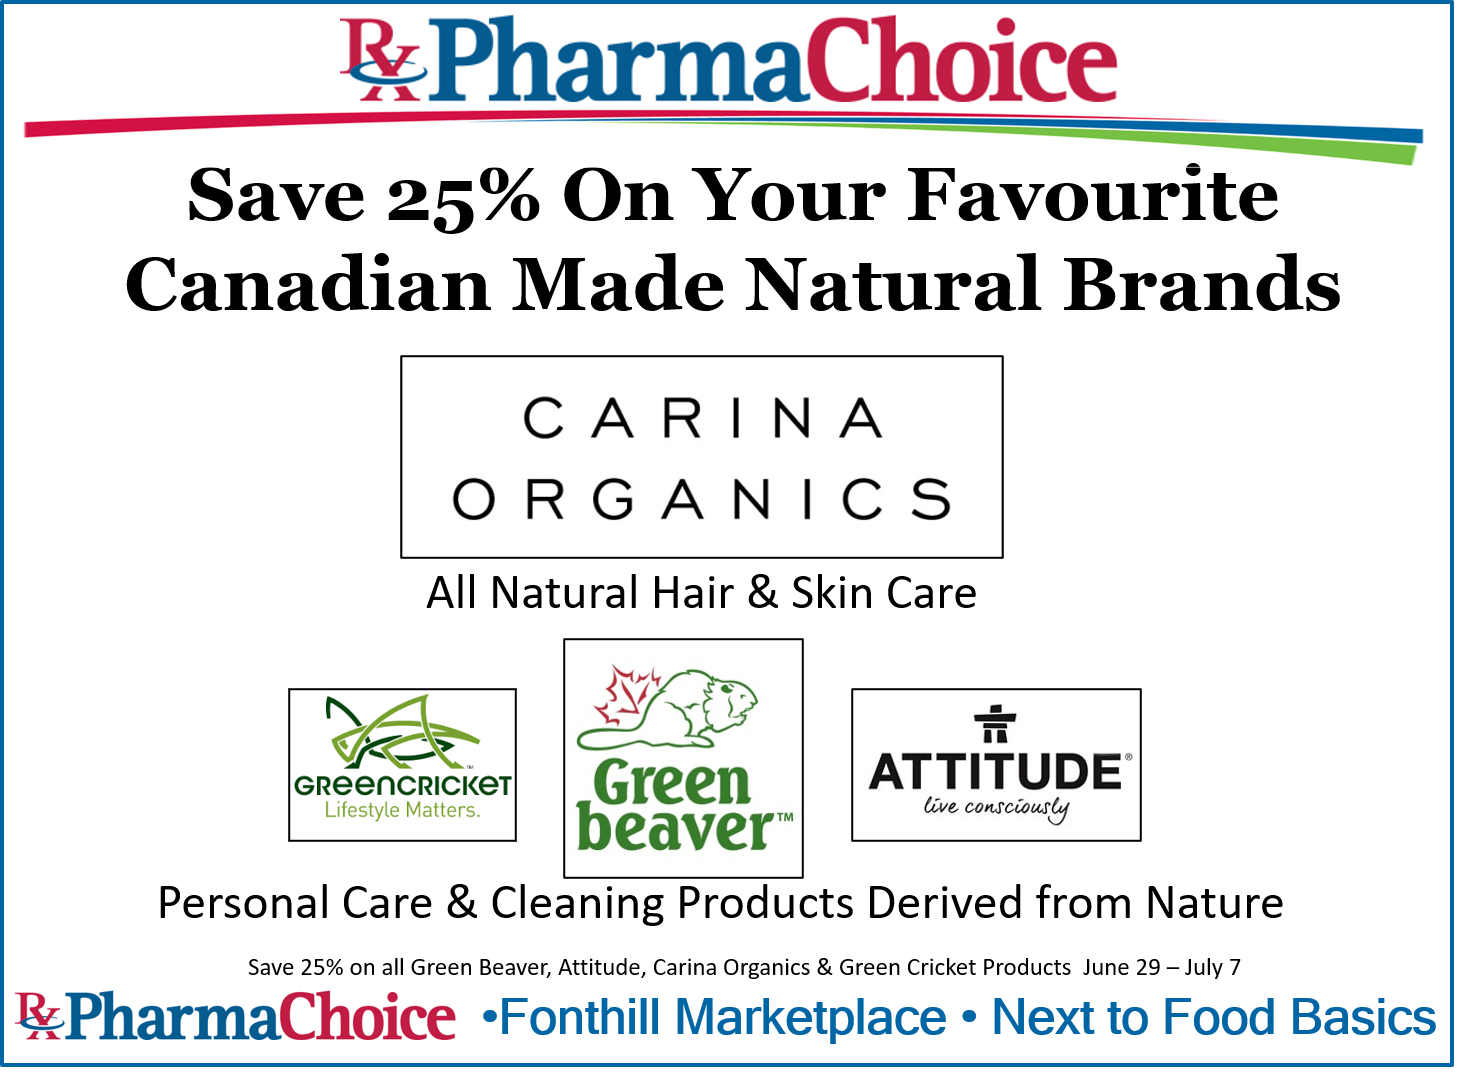 Save 25% on your Favourite Canadian Made Natural Brands